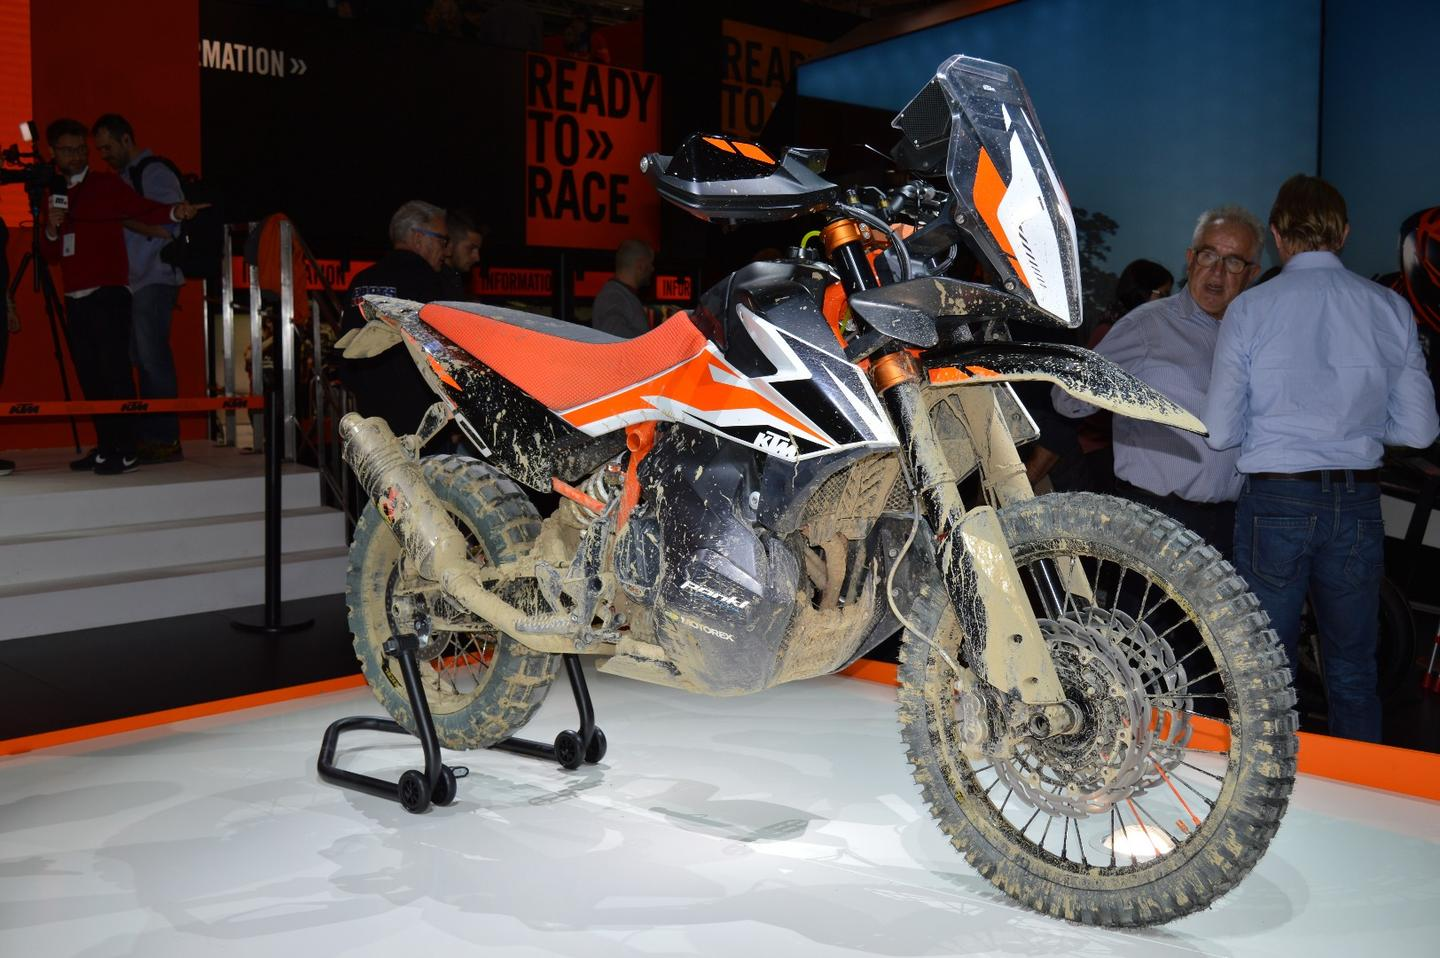 The 790 Adventure concept showcases the next bike to run on KTM's new in-line twin-cylinder engine